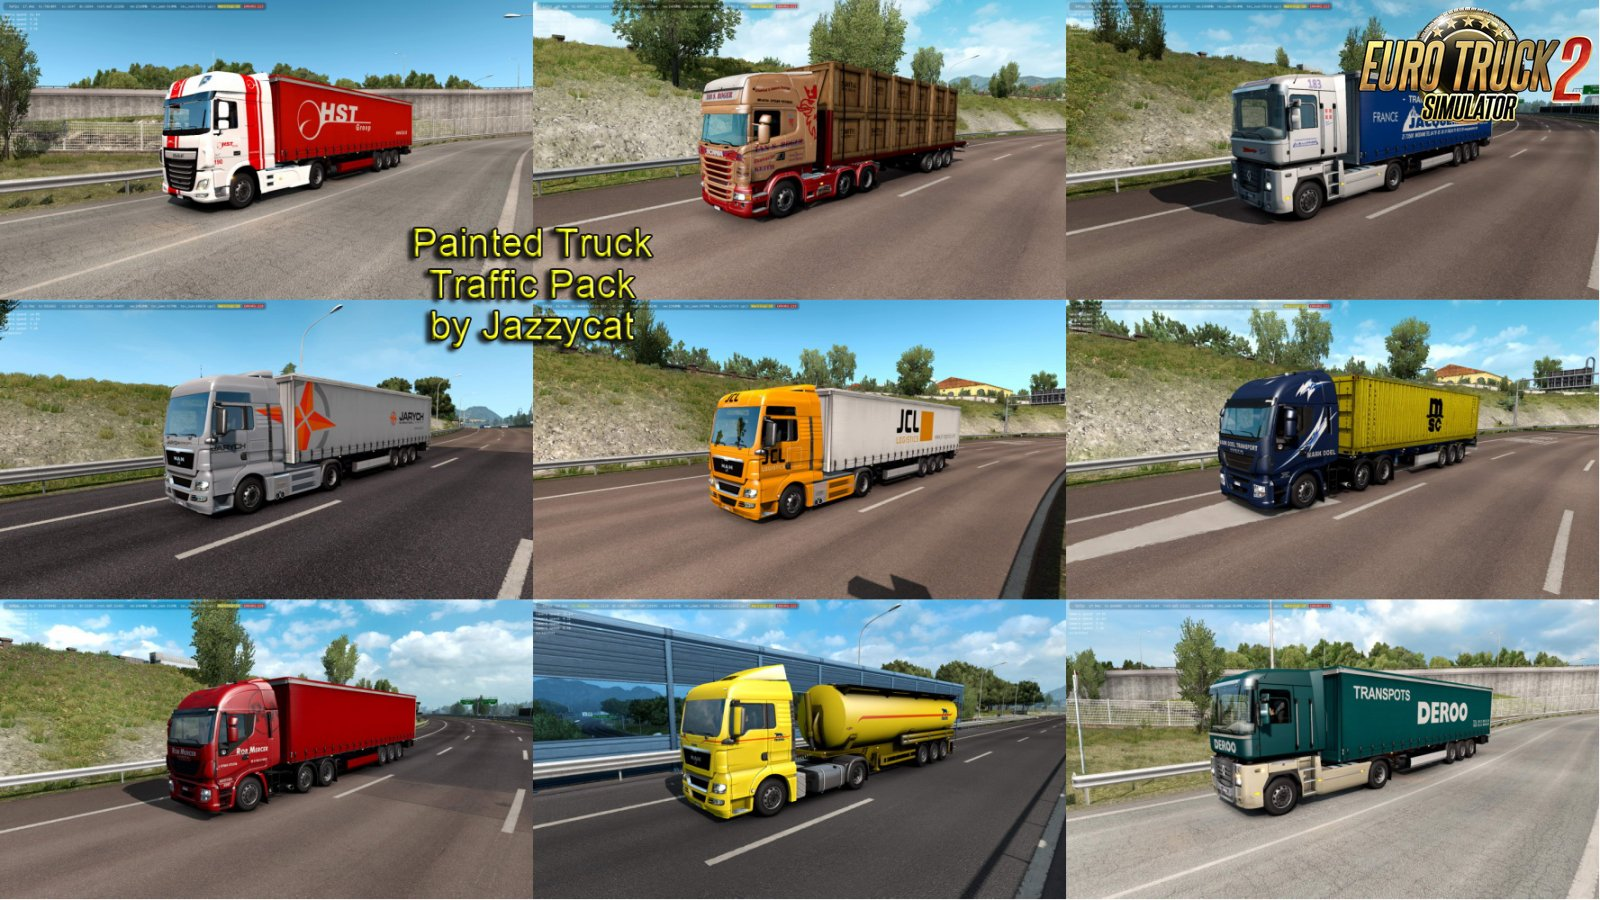 Painted Truck Traffic Pack v7.2 by Jazzycat